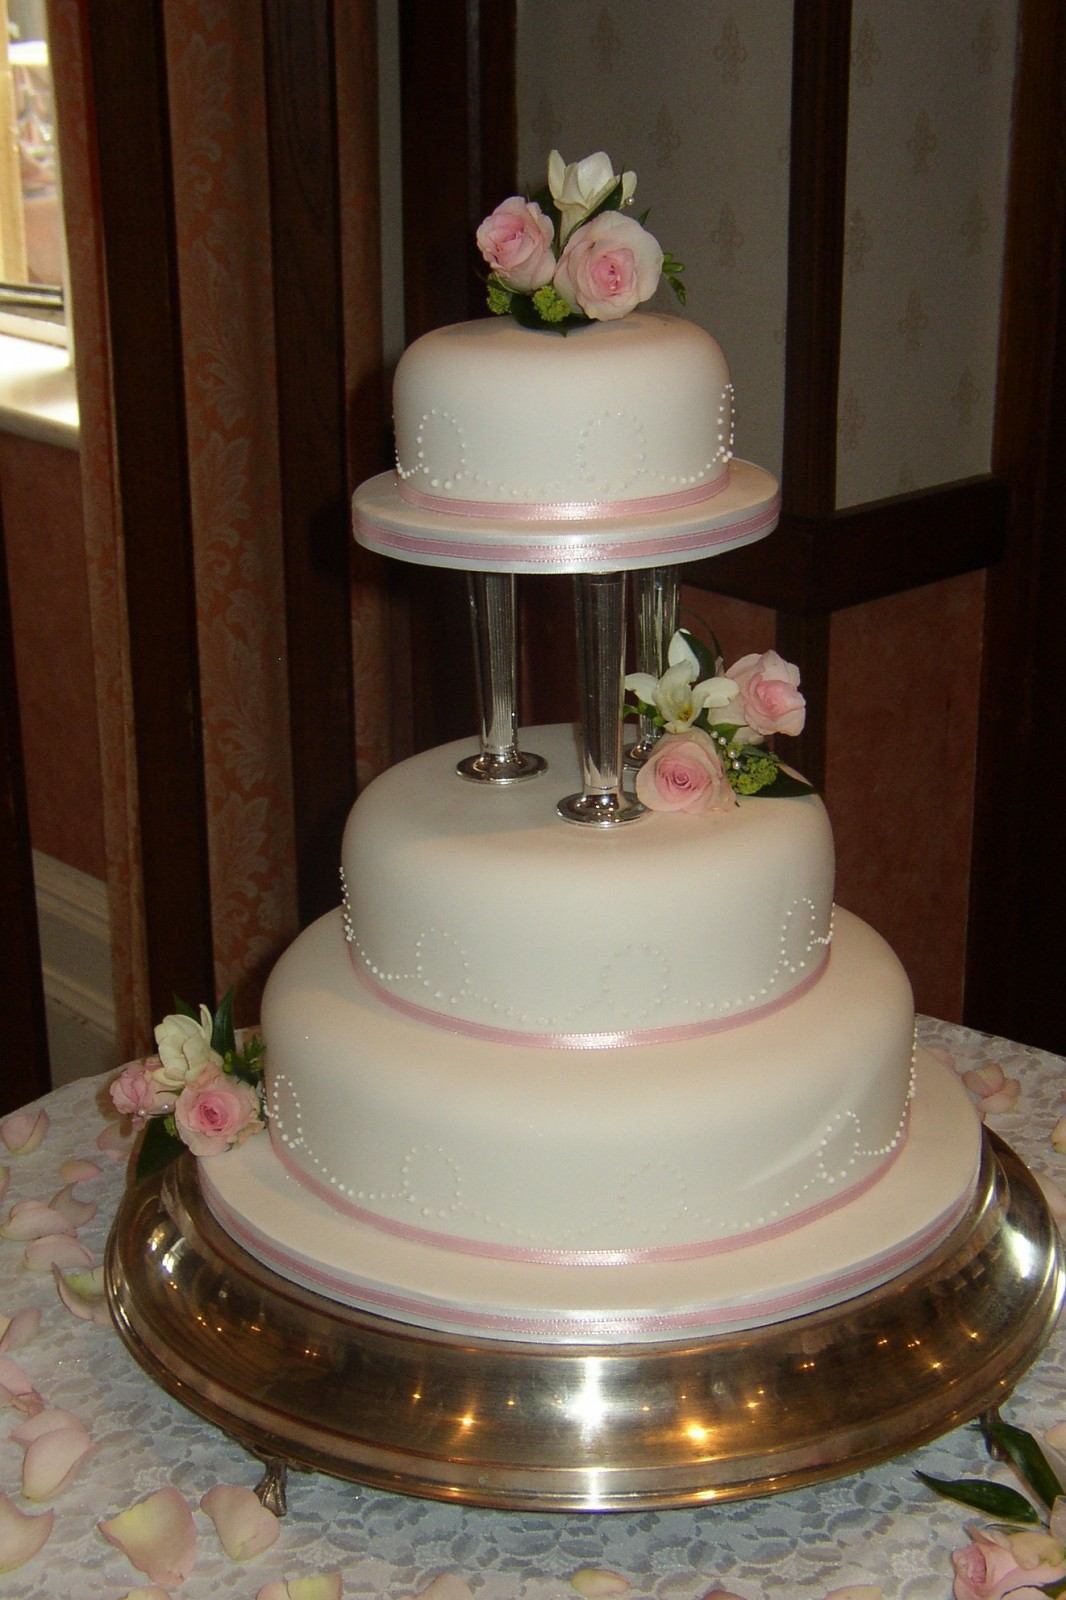 3 Tier Round Wedding Cake With Fresh Flowers 171 Susie S Cakes